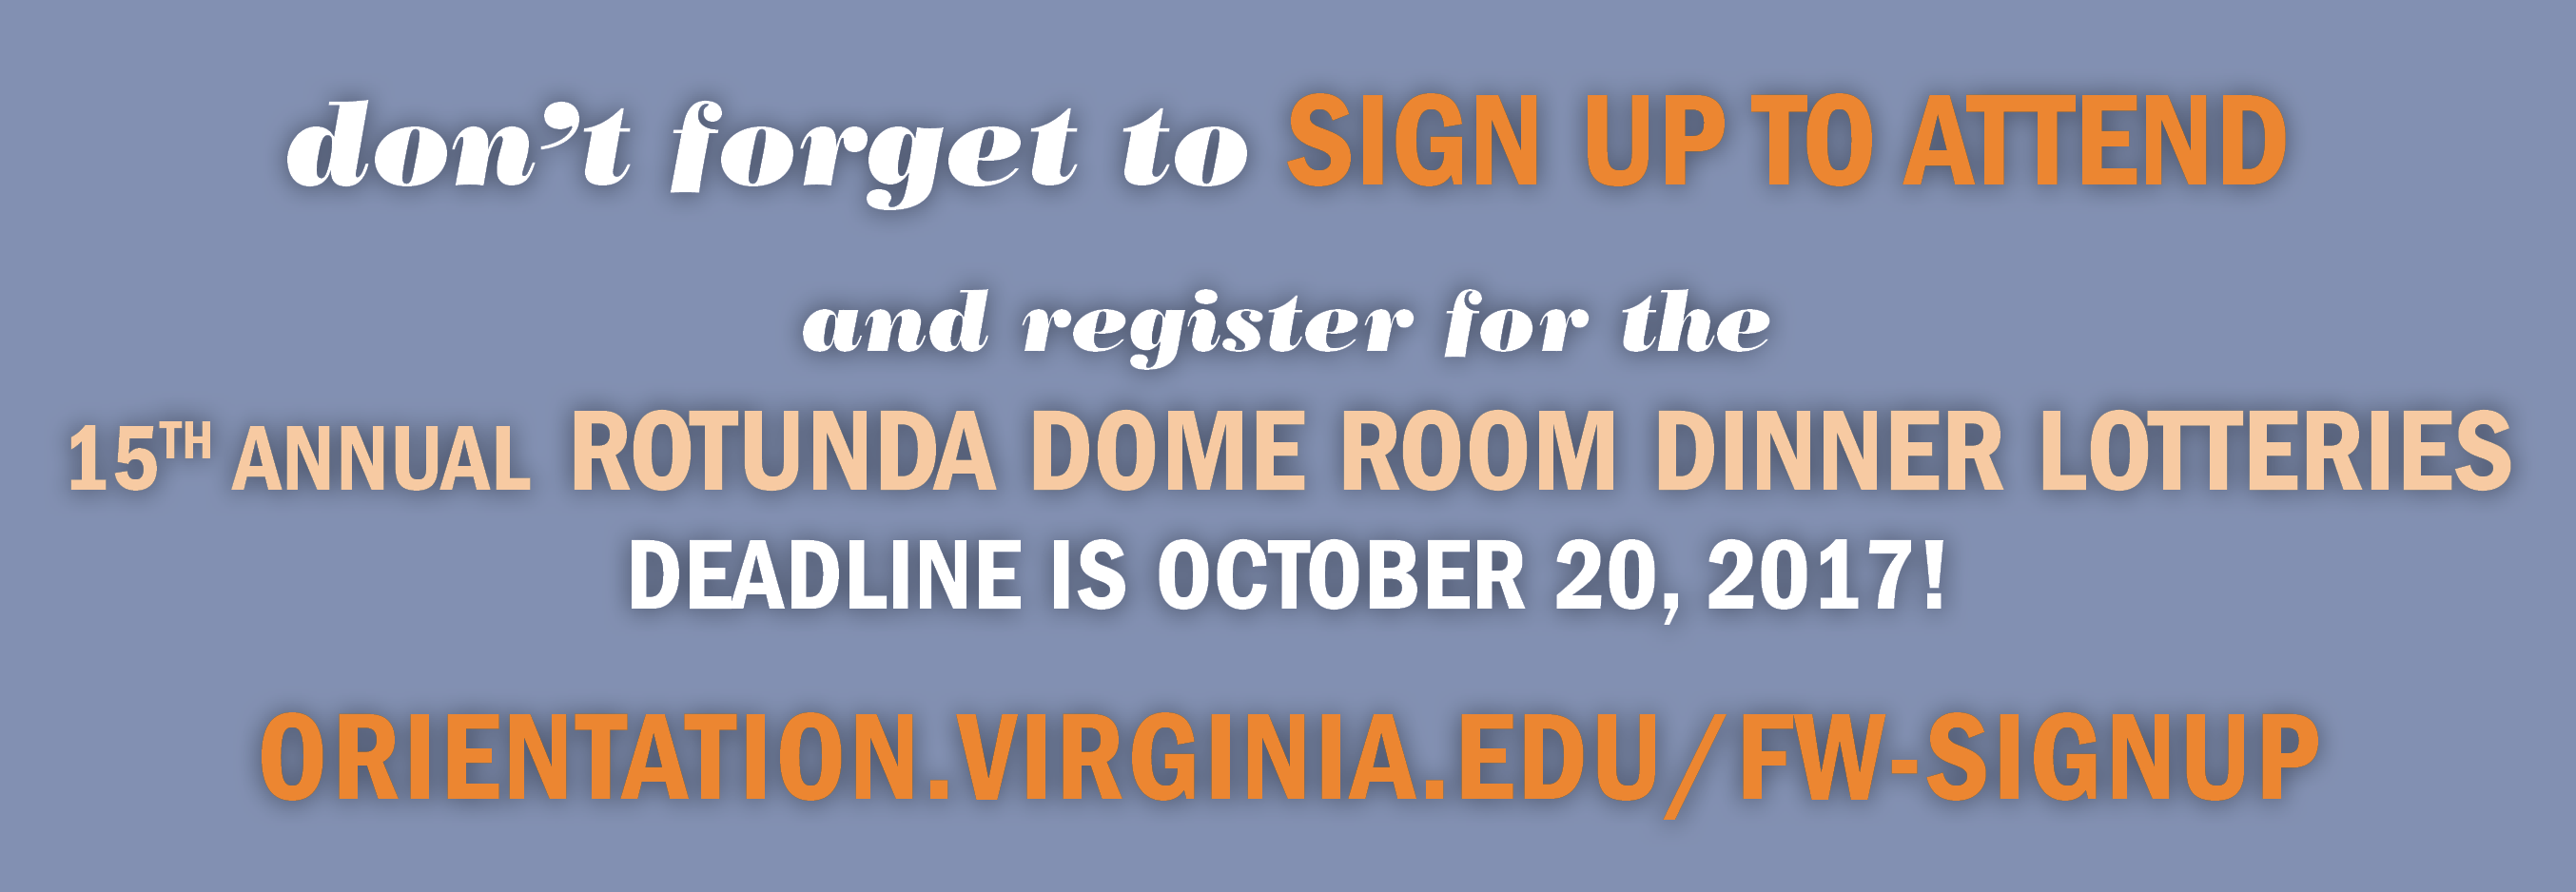 You can sign up for Family Weekend at orientation.virginia.edu/fw-signup! The sign up form includes your opportunity to register for the 15th Annual Rotunda Dome Room Dinner Lotteries! The deadline to enter the lotteries is October 20, 2017.